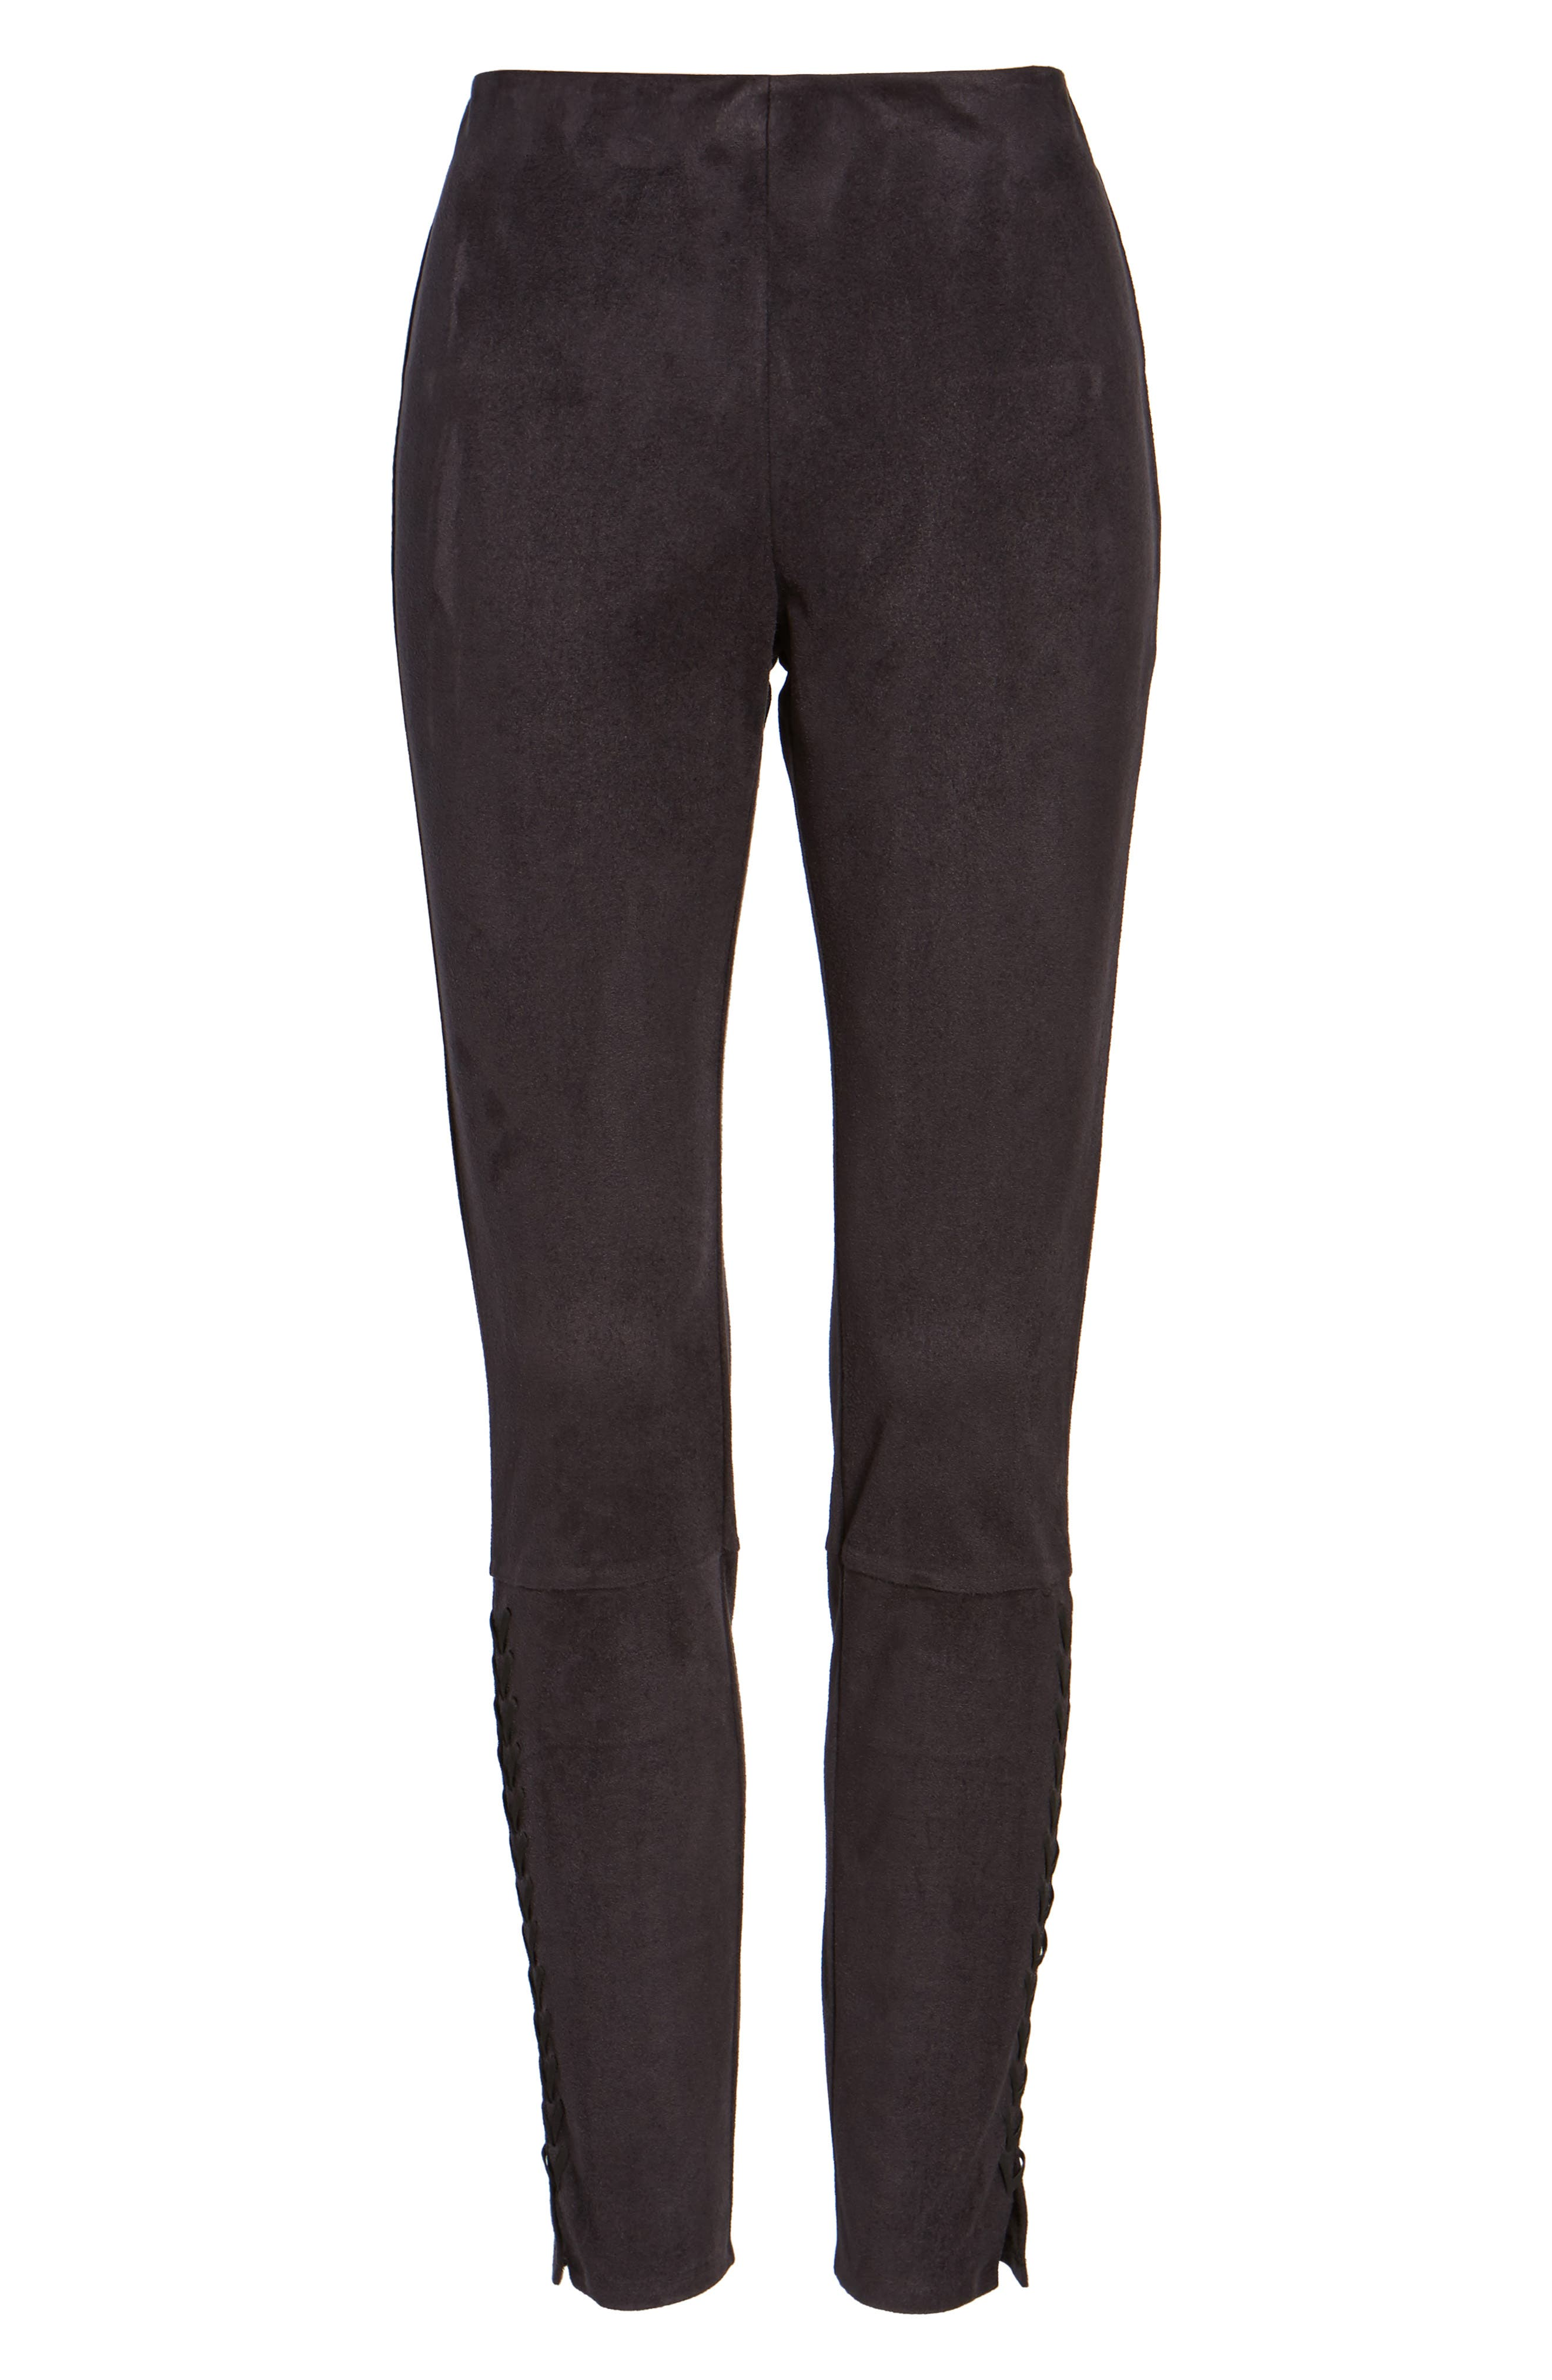 Mission Leggings,                             Alternate thumbnail 6, color,                             001